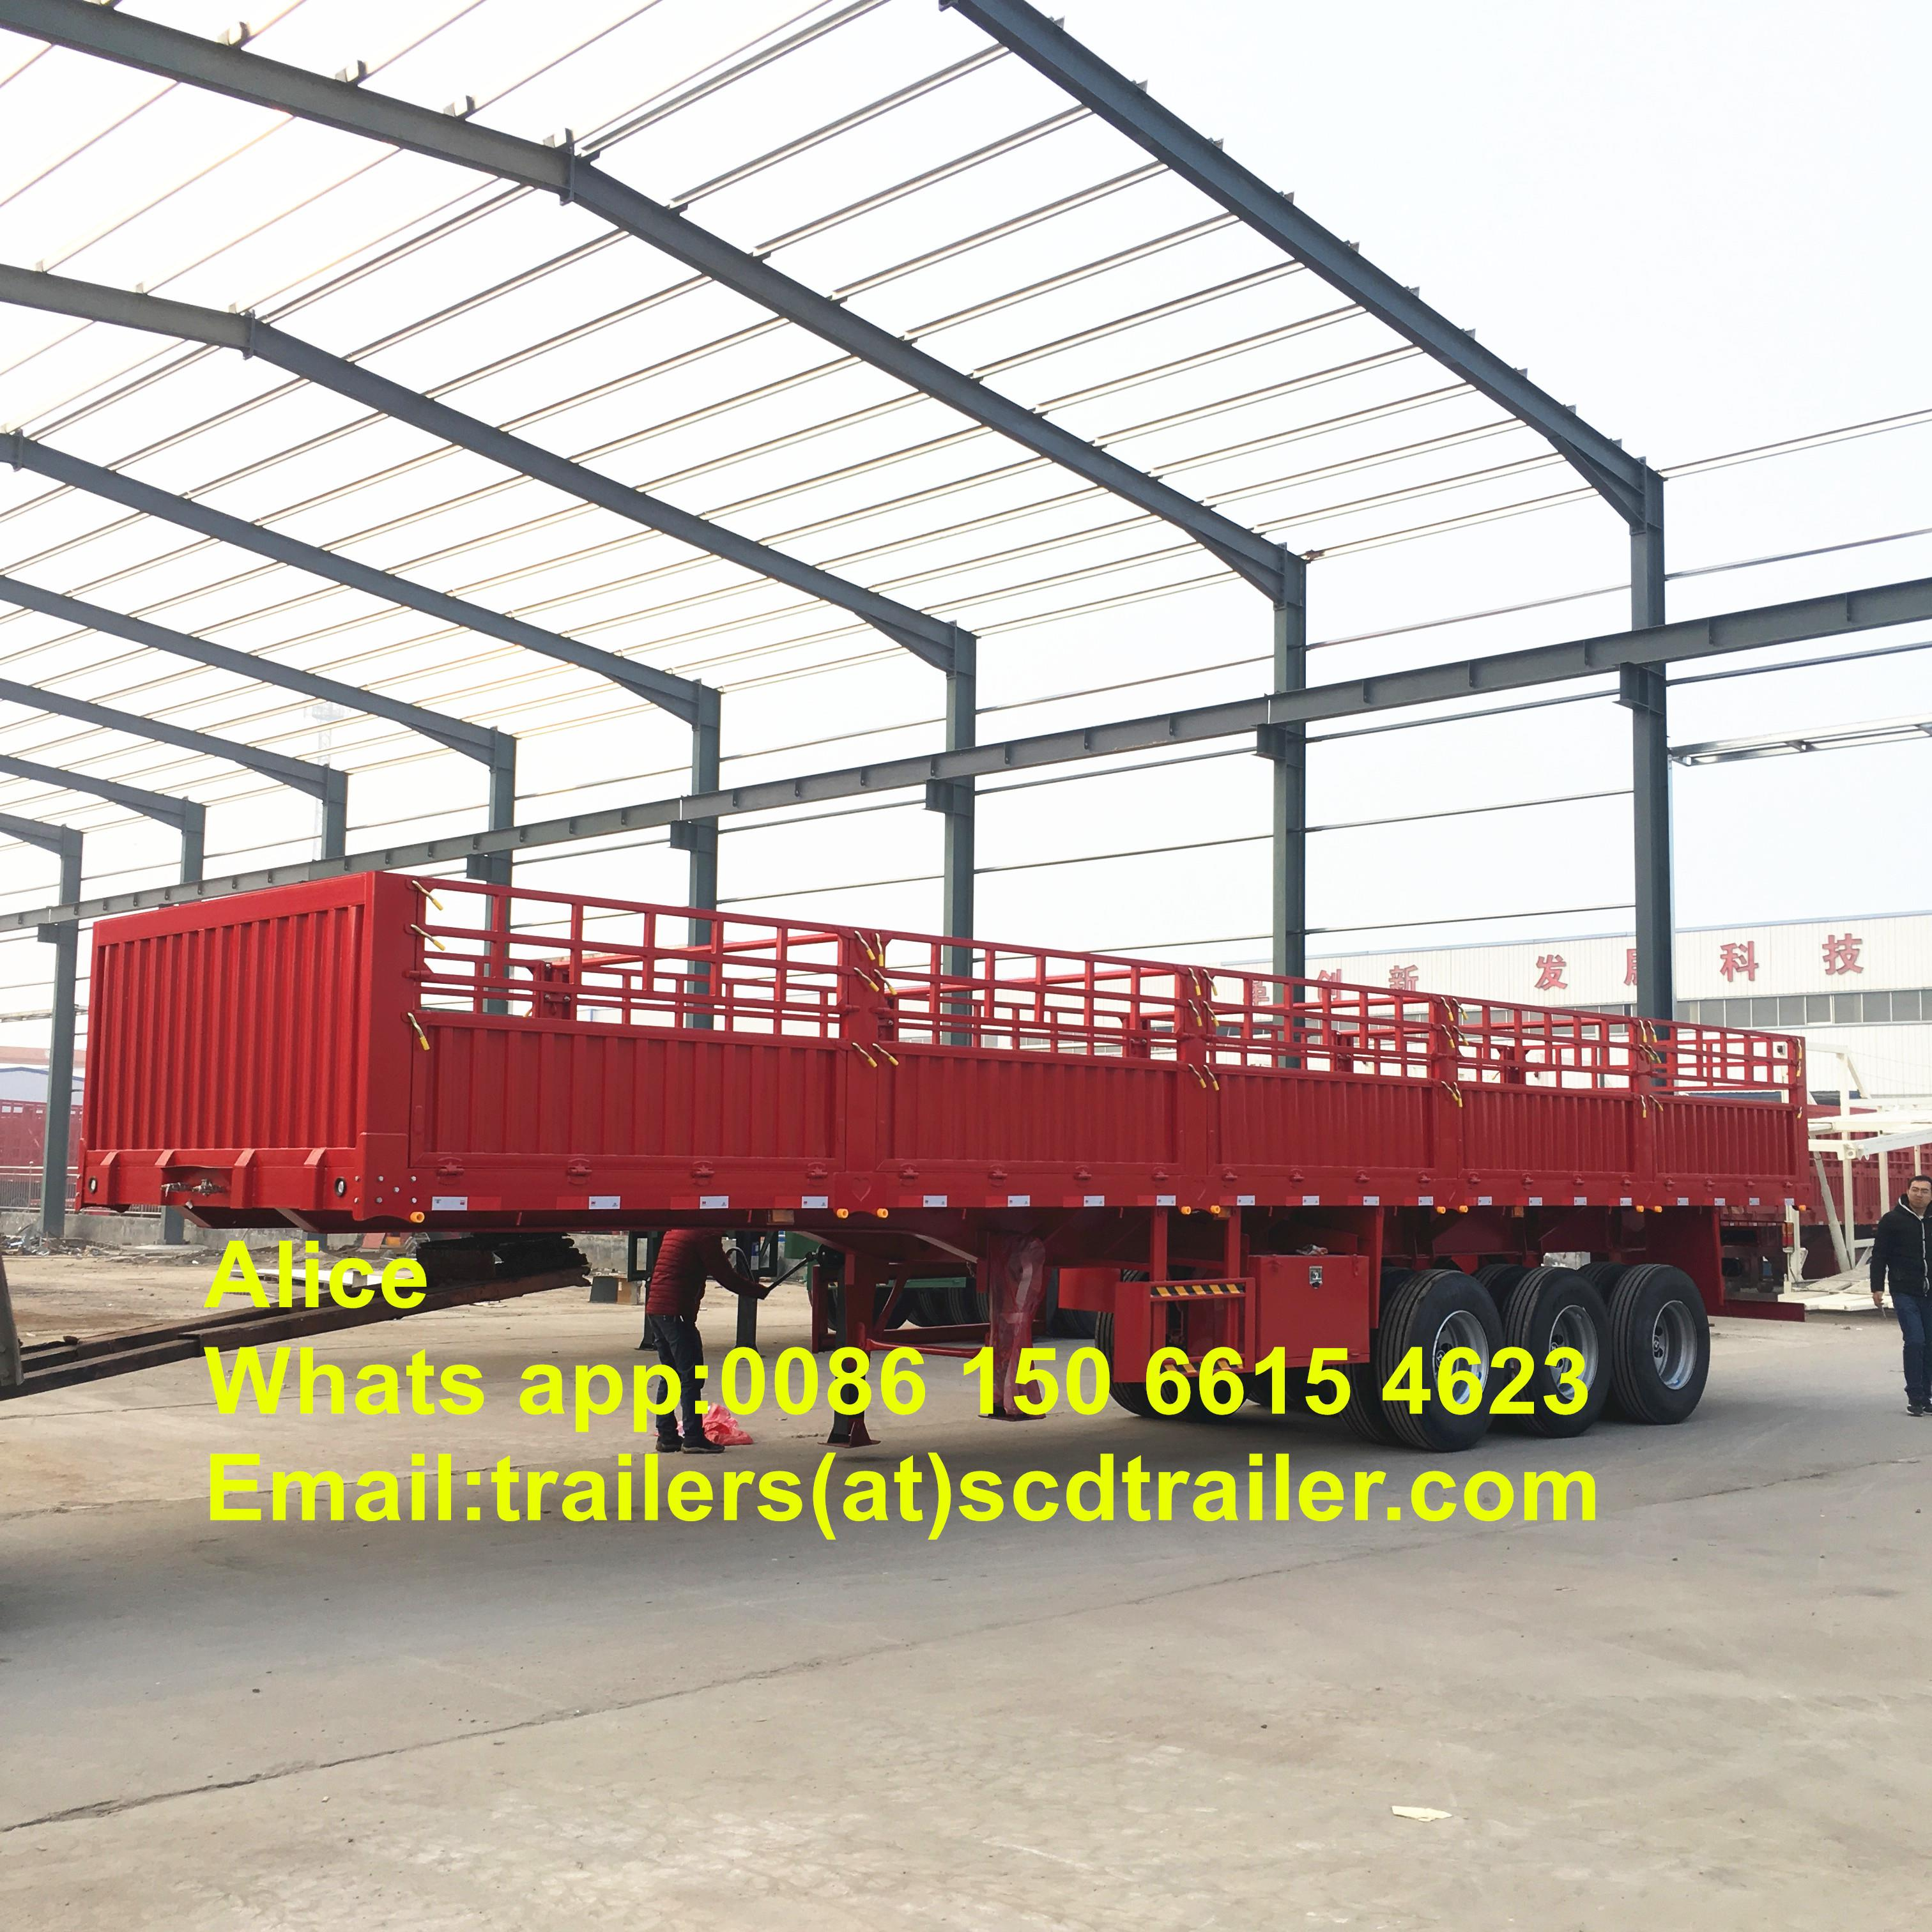 10 cargo trailers to Niger